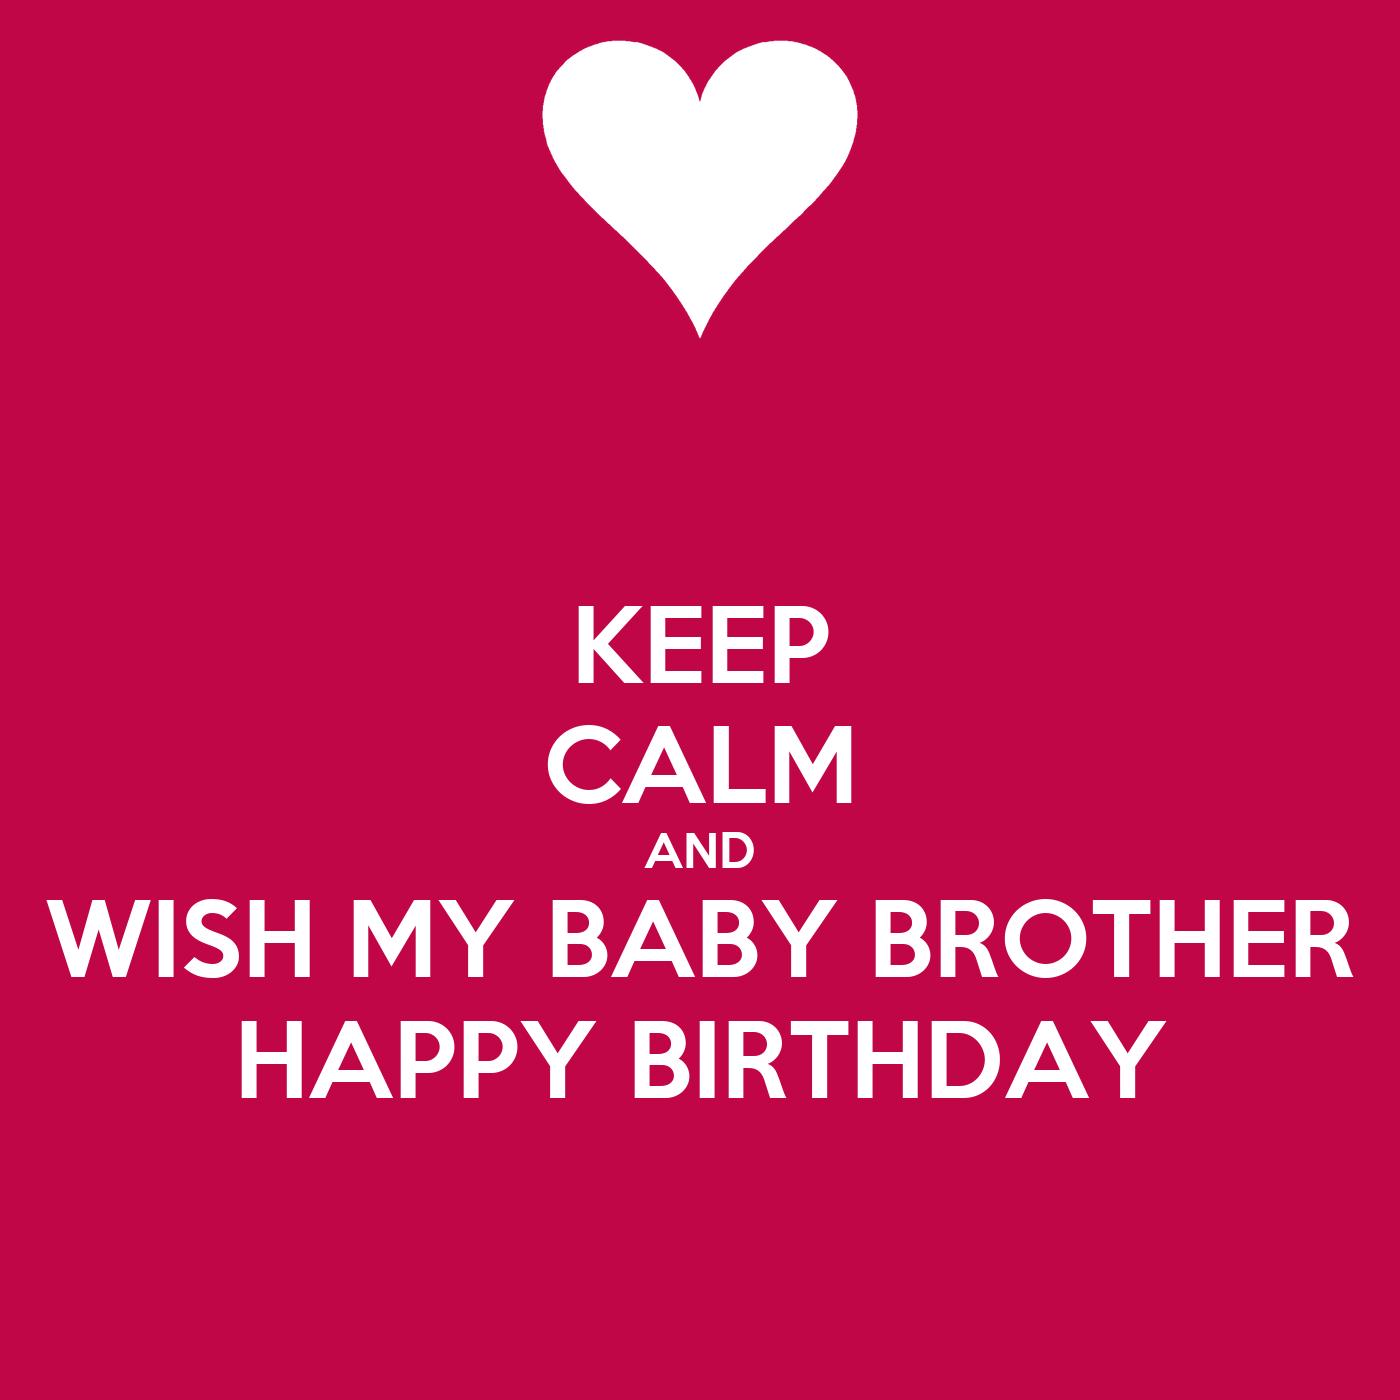 KEEP CALM AND WISH MY BABY BROTHER HAPPY BIRTHDAY Poster